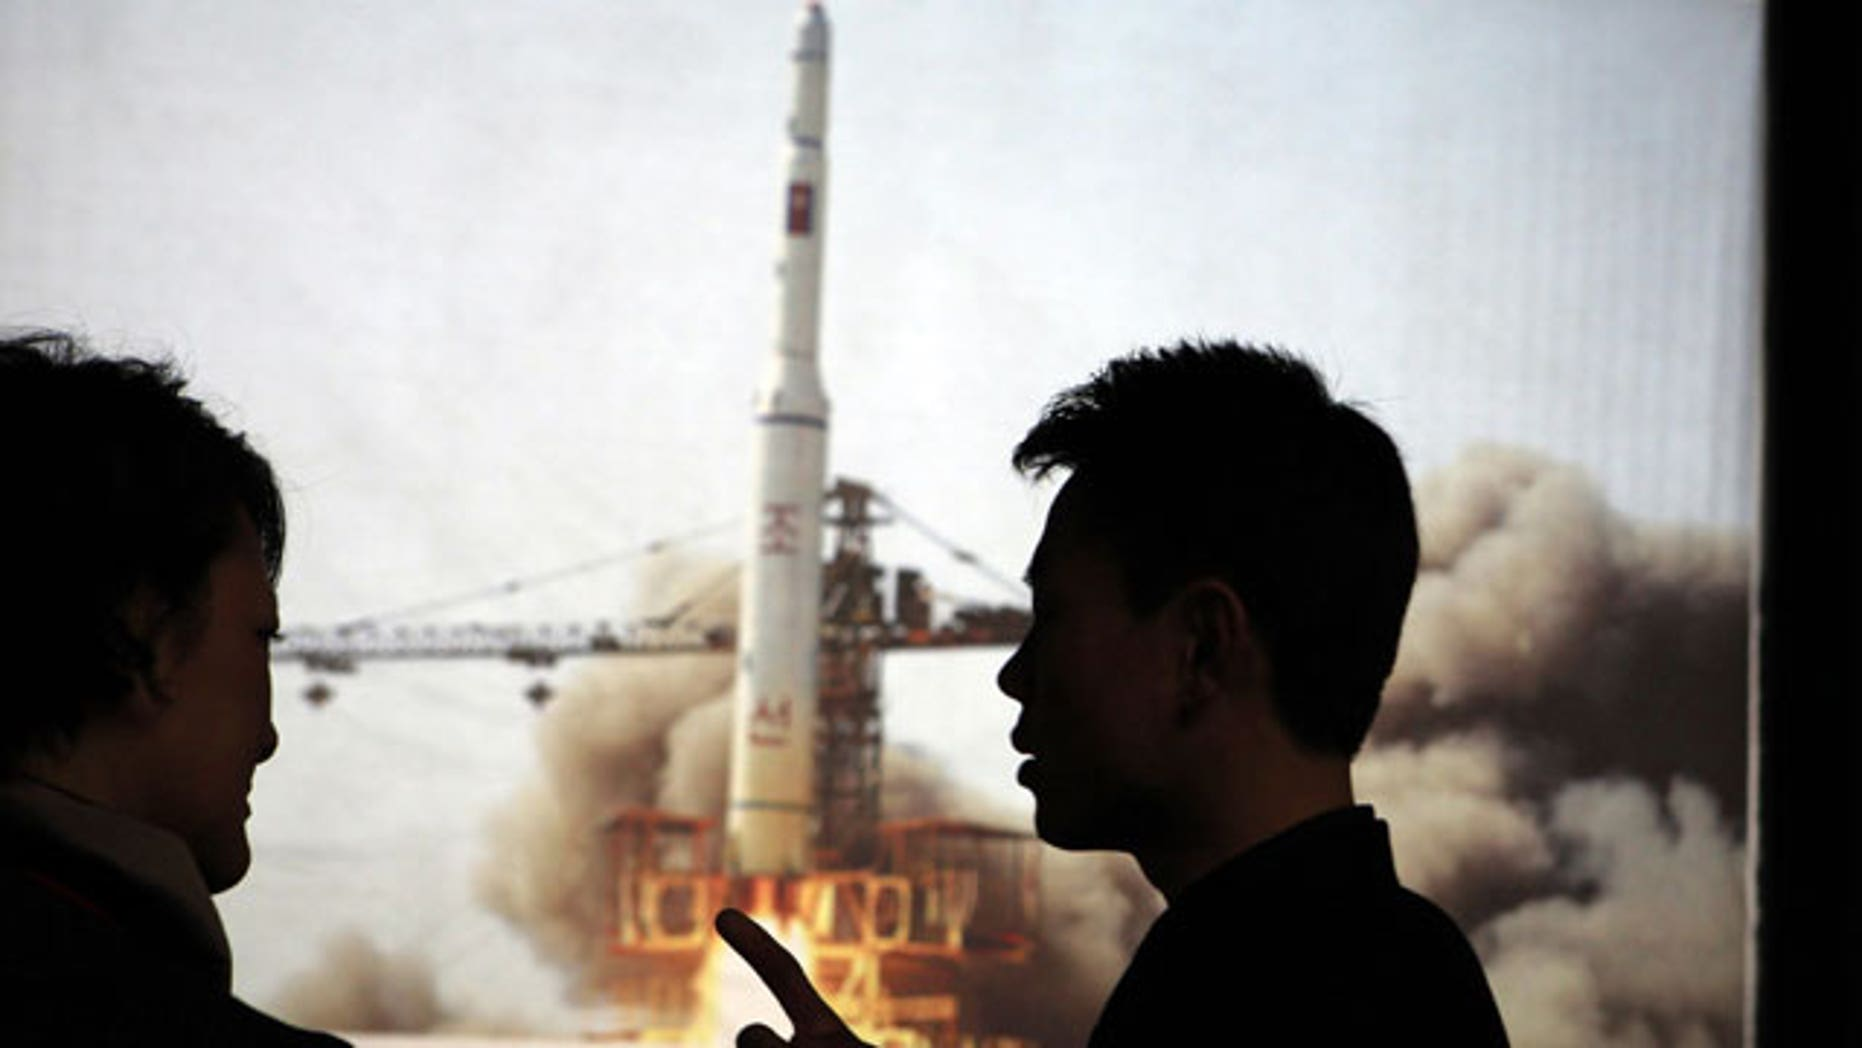 In this photo taken Tuesday, April 10, 2012, North Korean guide Kim Won Ho, right, speaks to a foreign journalist near a photo depicting the 2009 satellite rocket launch at the Three Revolutions exhibition hall in Pyongyang, North Korea.